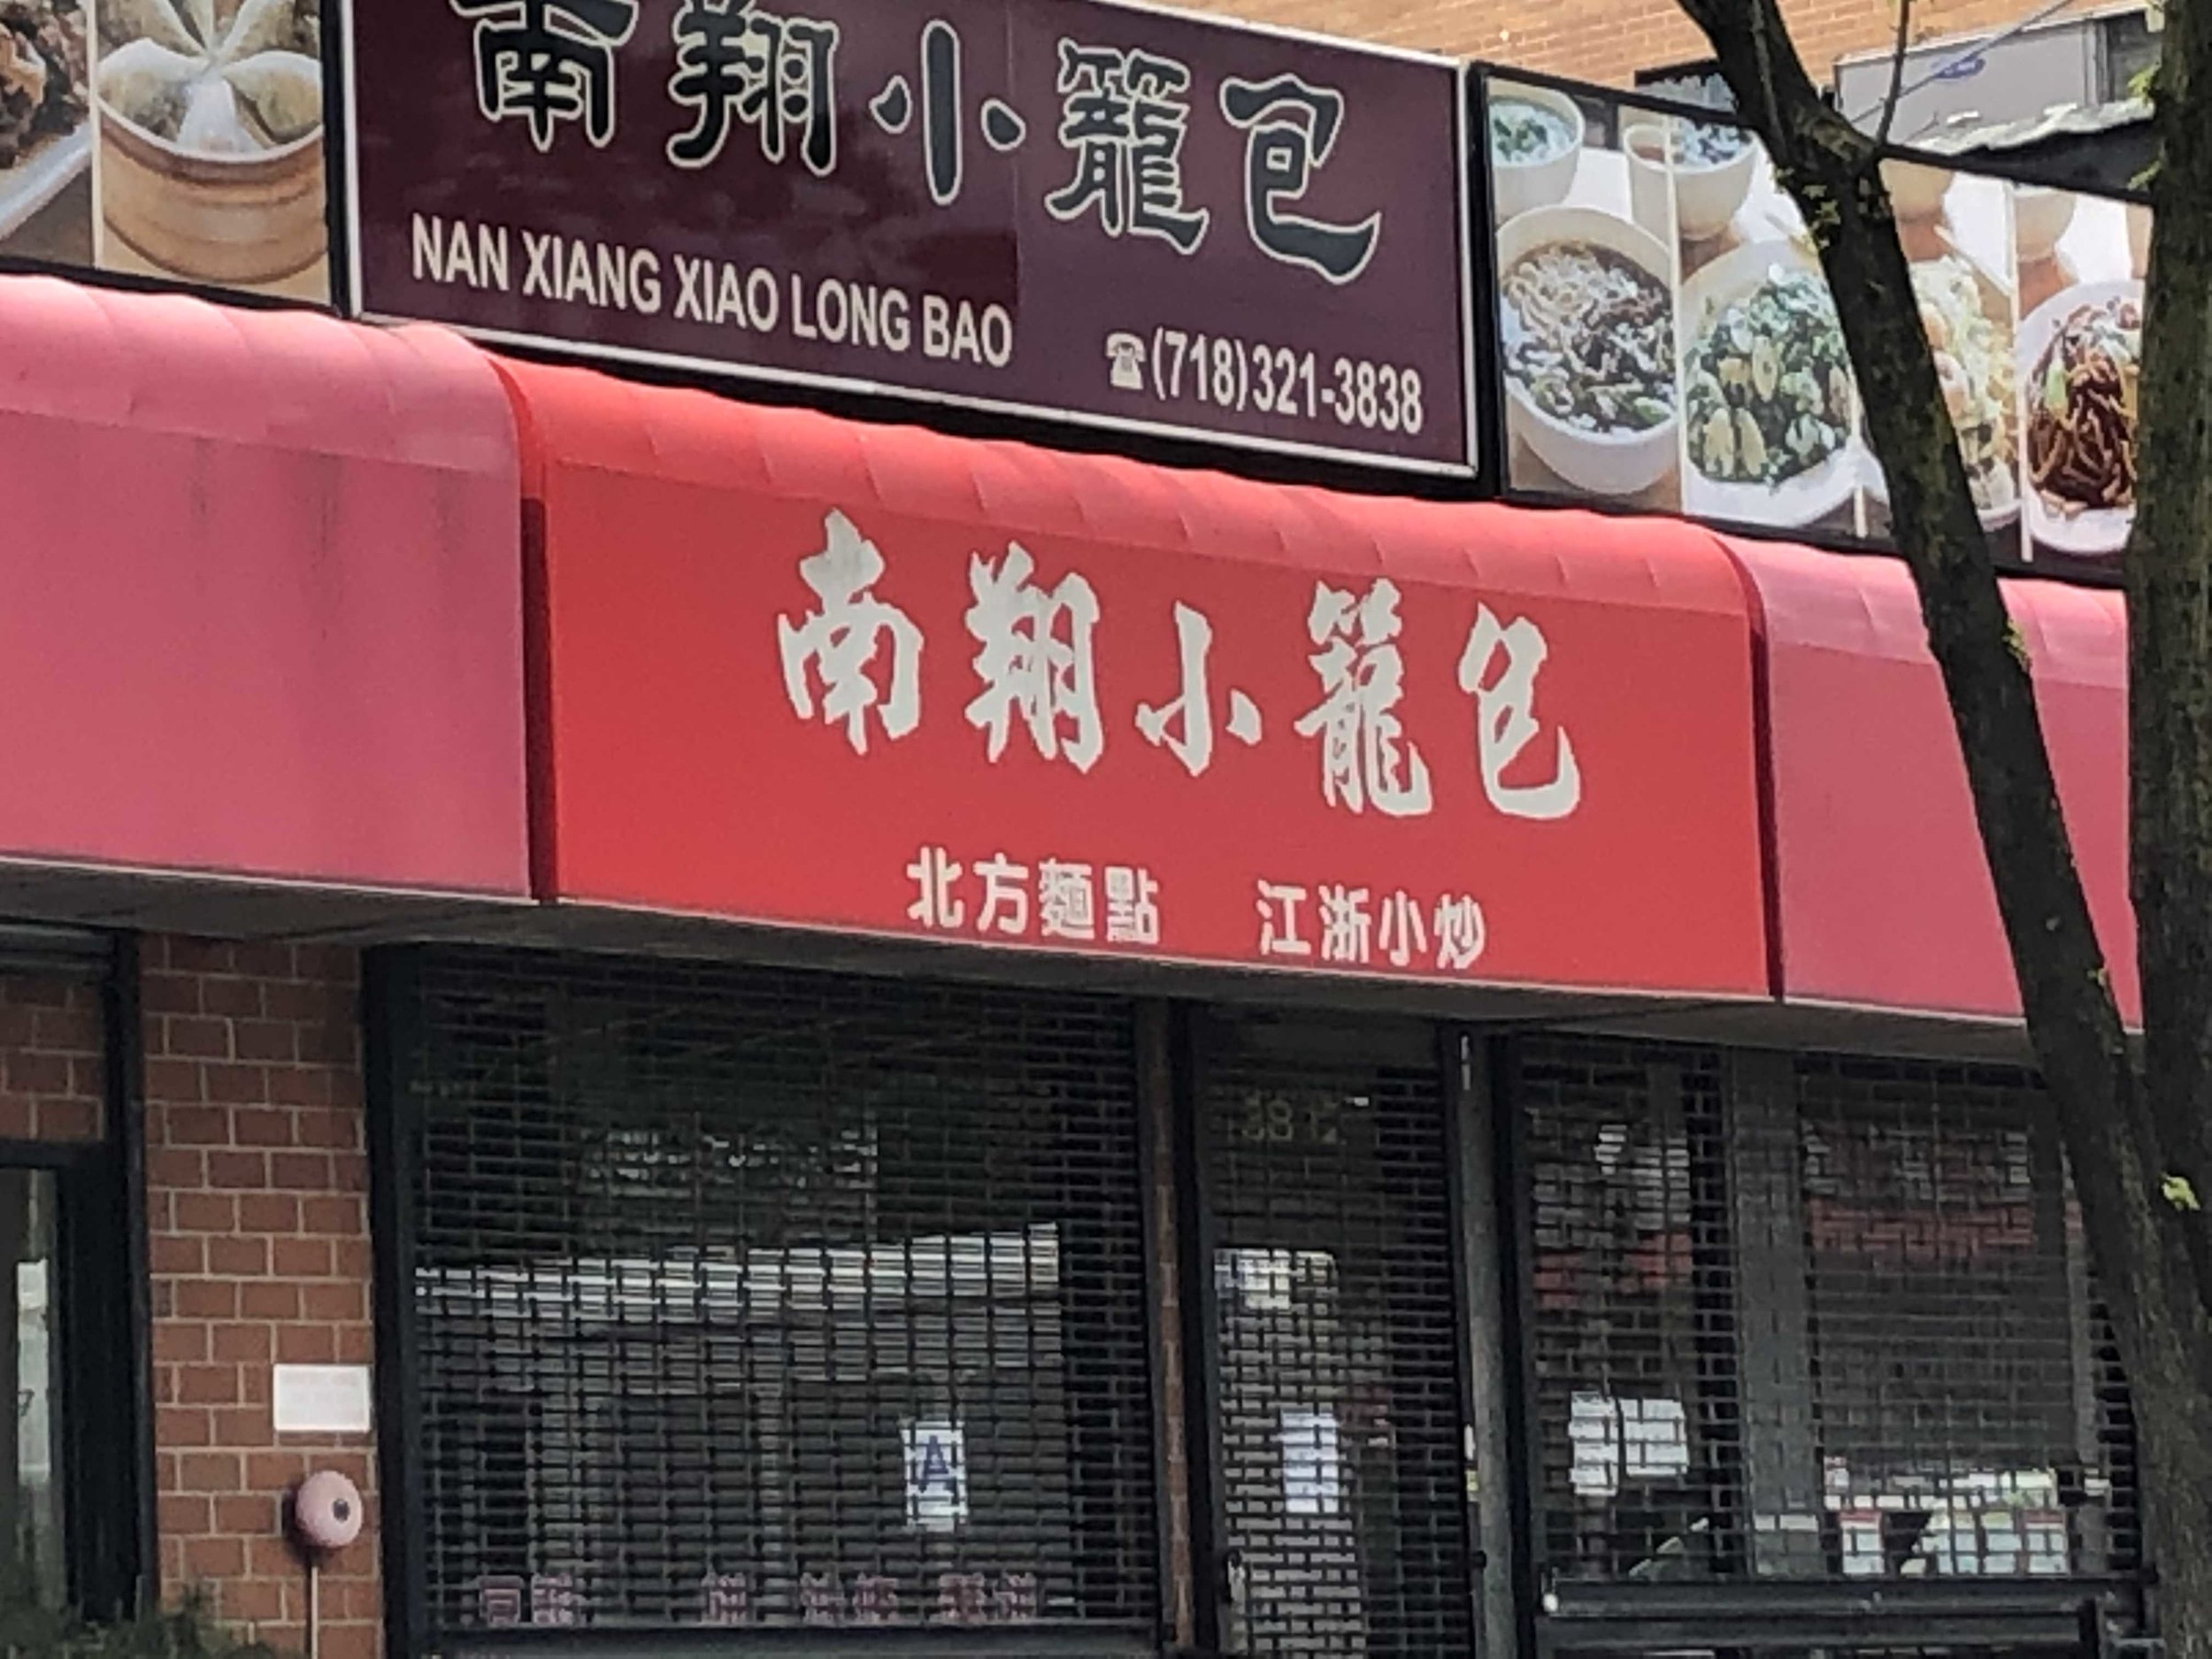 Nan Xiang Xiao Long Bao was one of the most sought-after soup dumpling eateries in the city before it shut down last month.